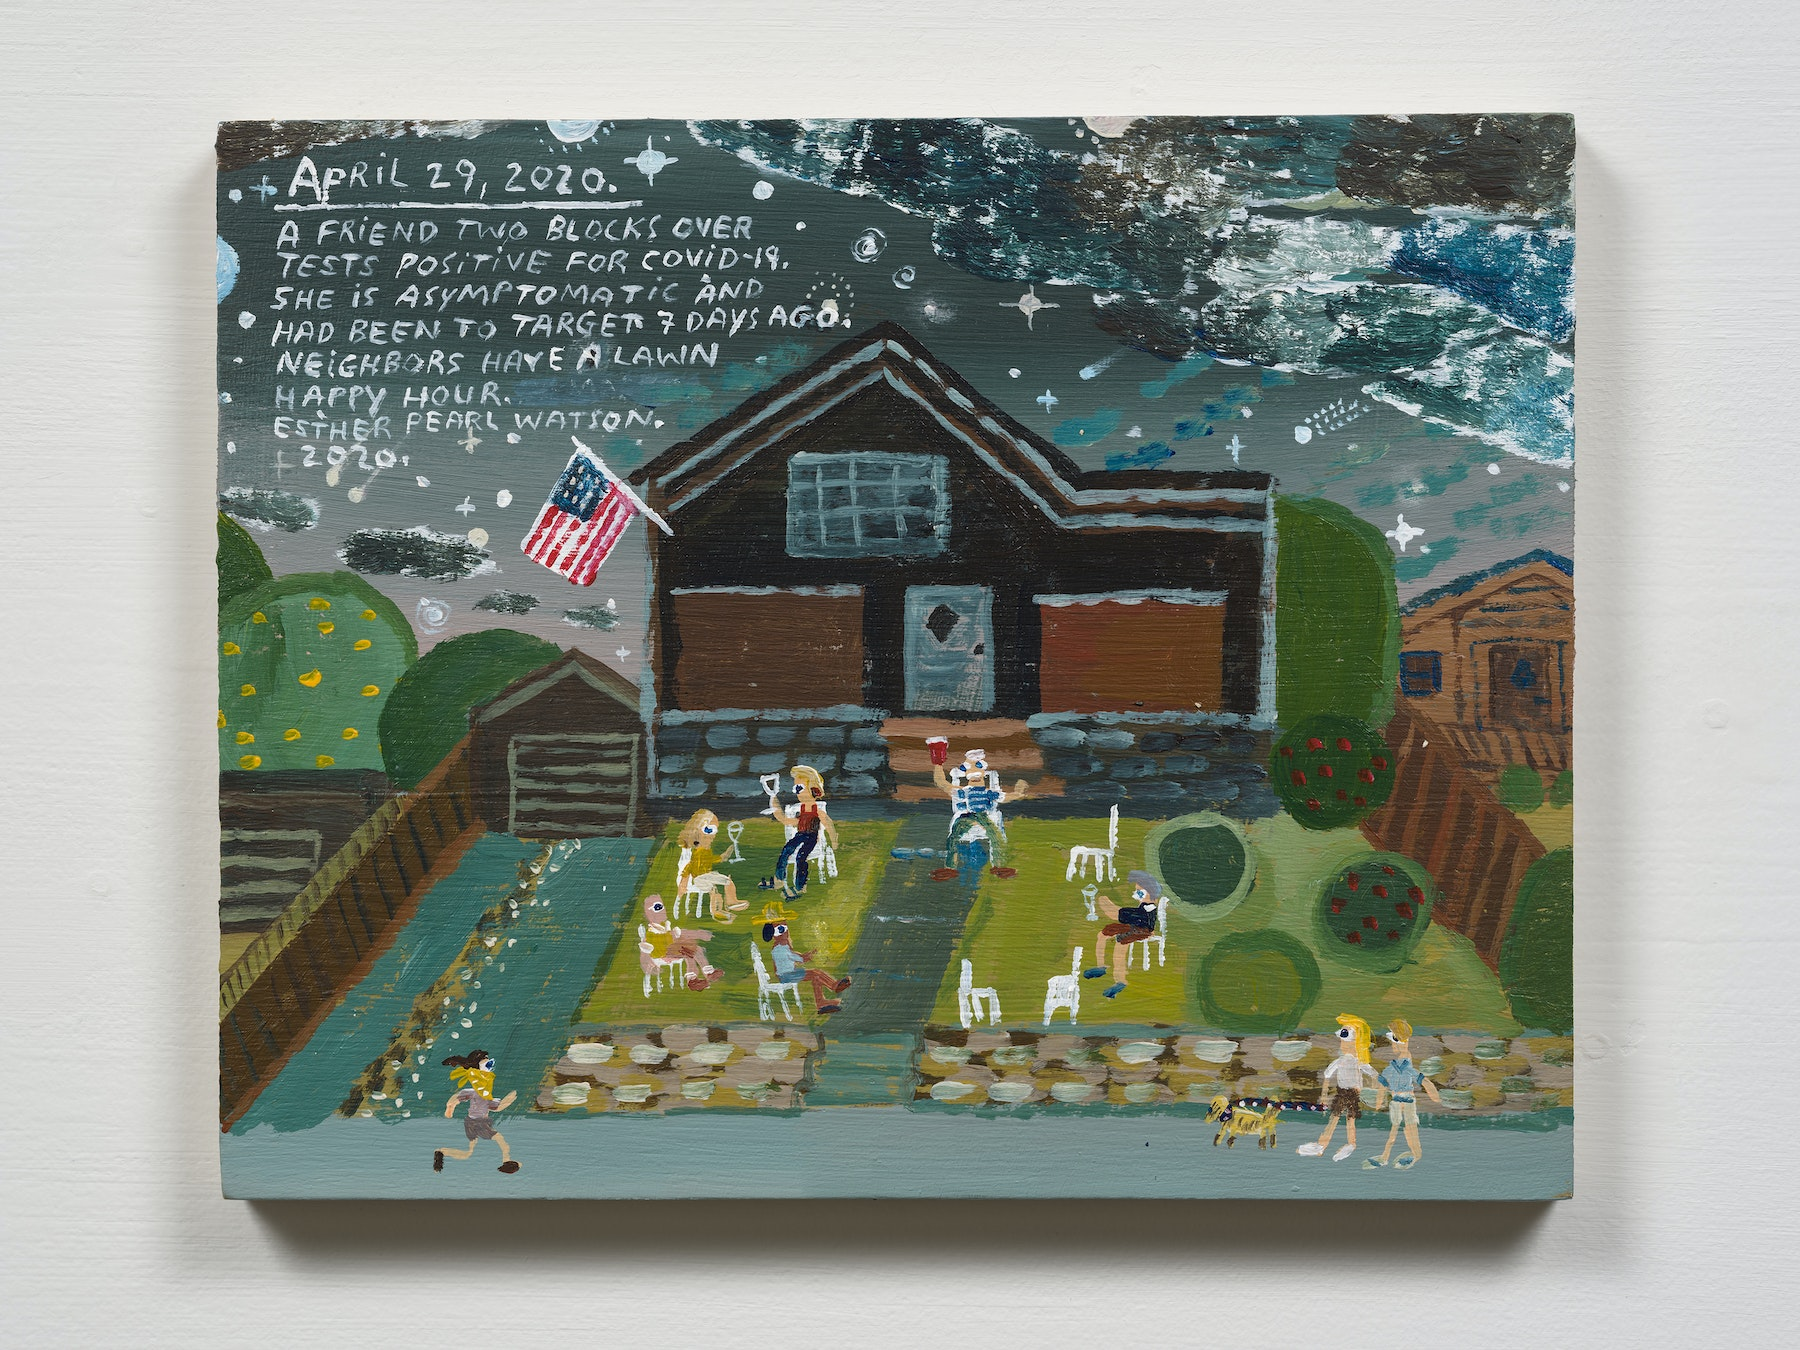 """Esther Pearl Watson """"April 29, A Friend Tests Positive,"""" 2020 Acrylic with pencil on panel 8 x 10"""" [HxW] (20.32 x 25.4 cm) Inventory #EPW267 Courtesy of the artist and Vielmetter Los Angeles Photo credit: Jeff Mclane"""